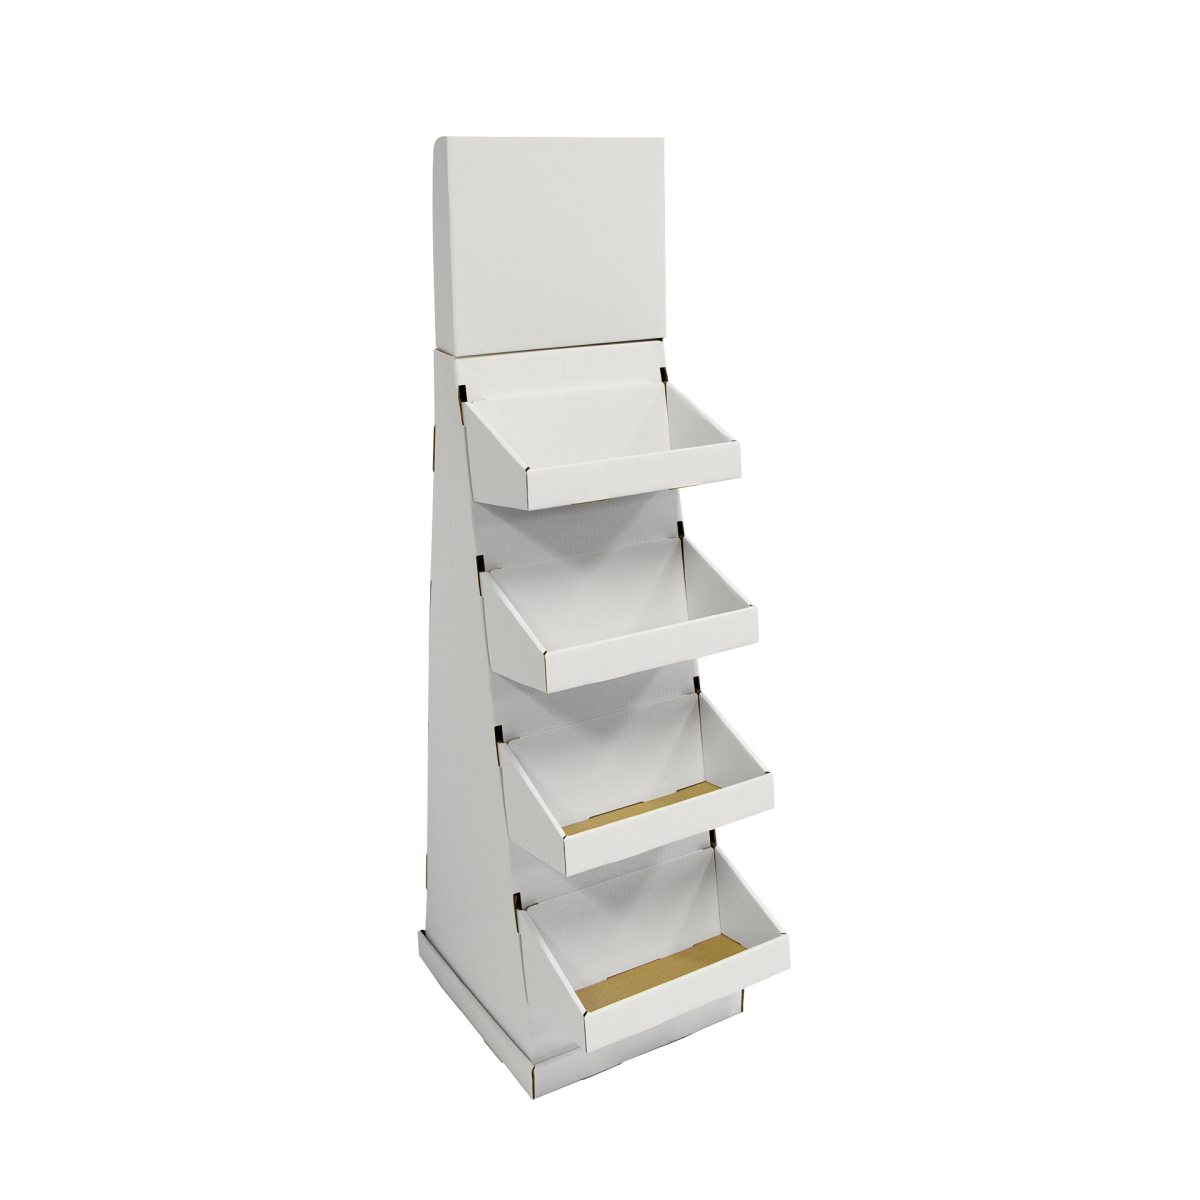 Cardboard floor display with header and 4 trays as shelves (small version) - white